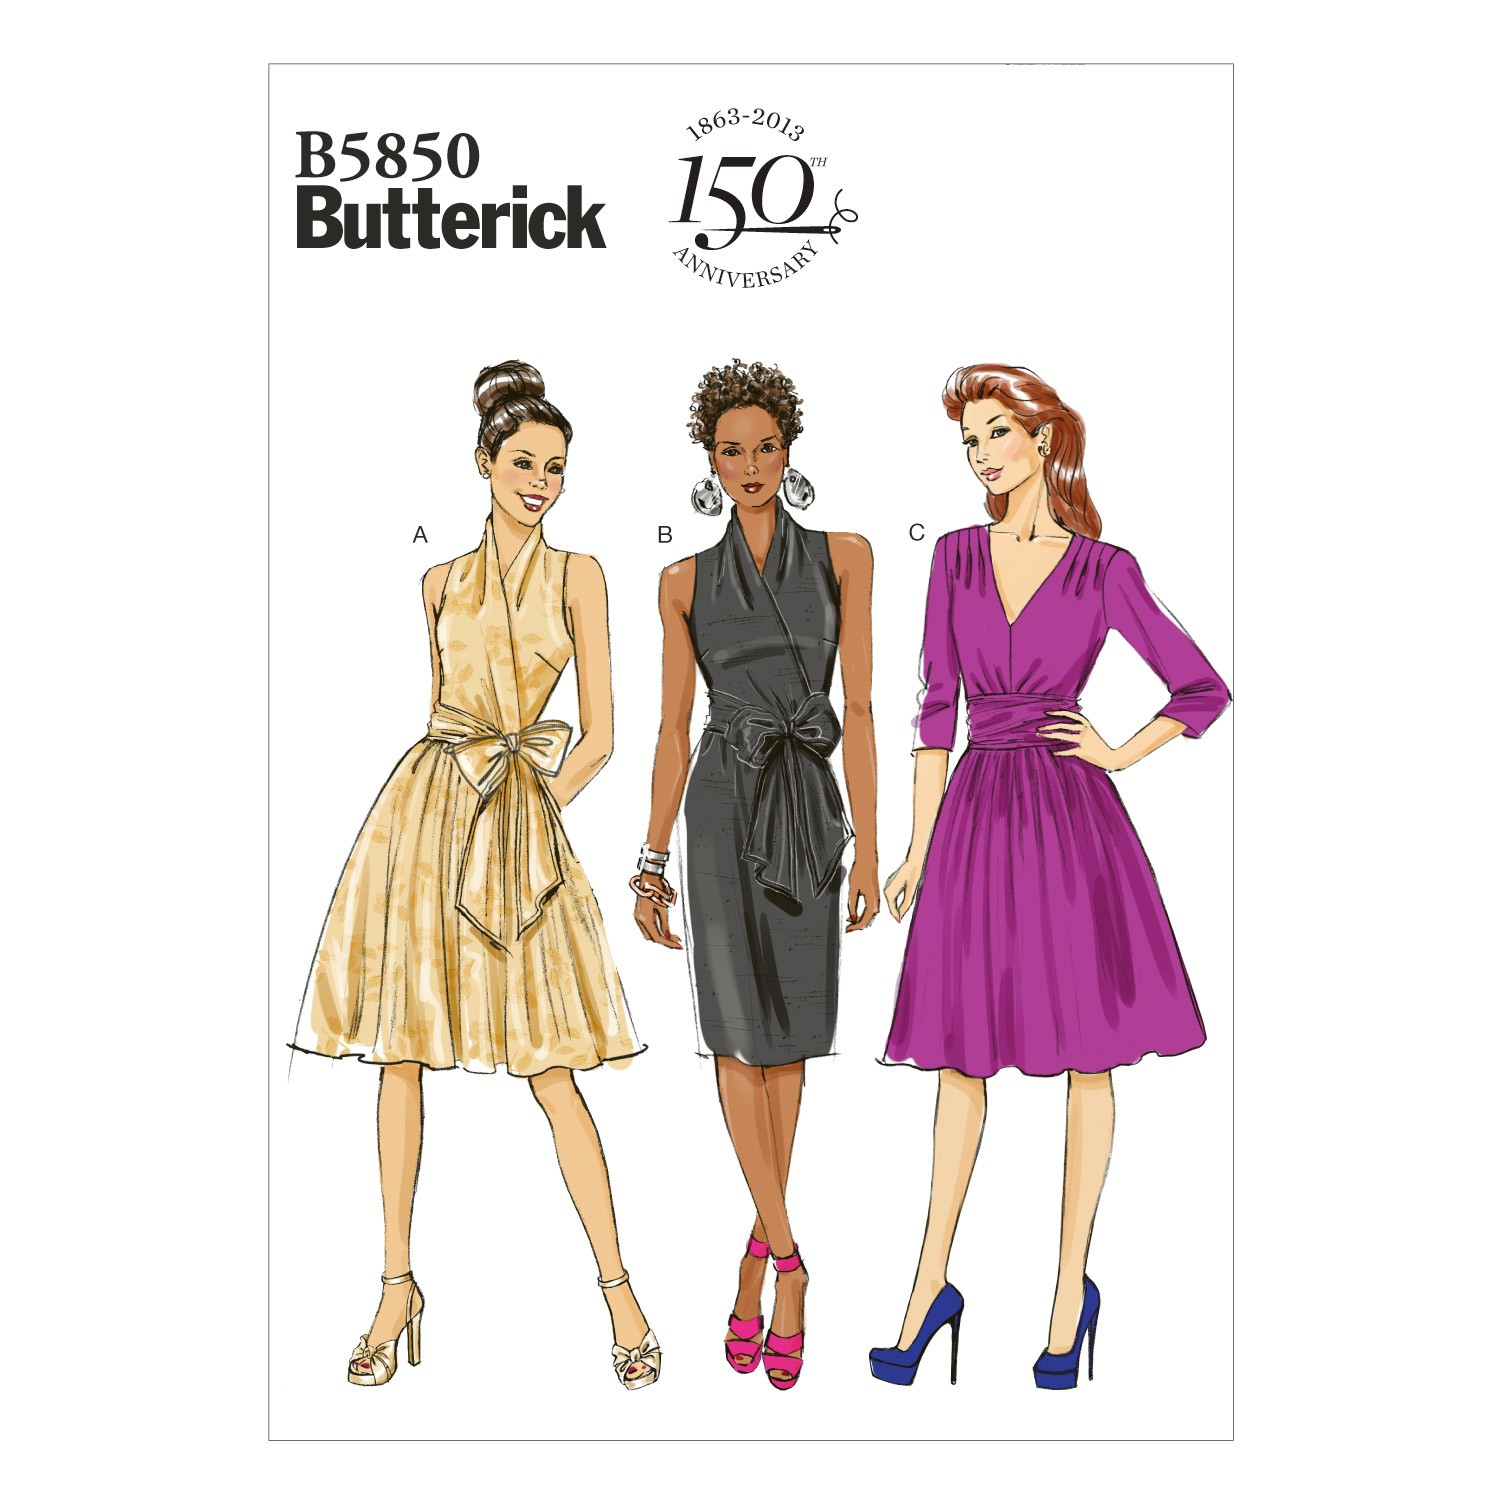 Butterick Sewing Pattern 5850 Misses' Short Dress Evening Out